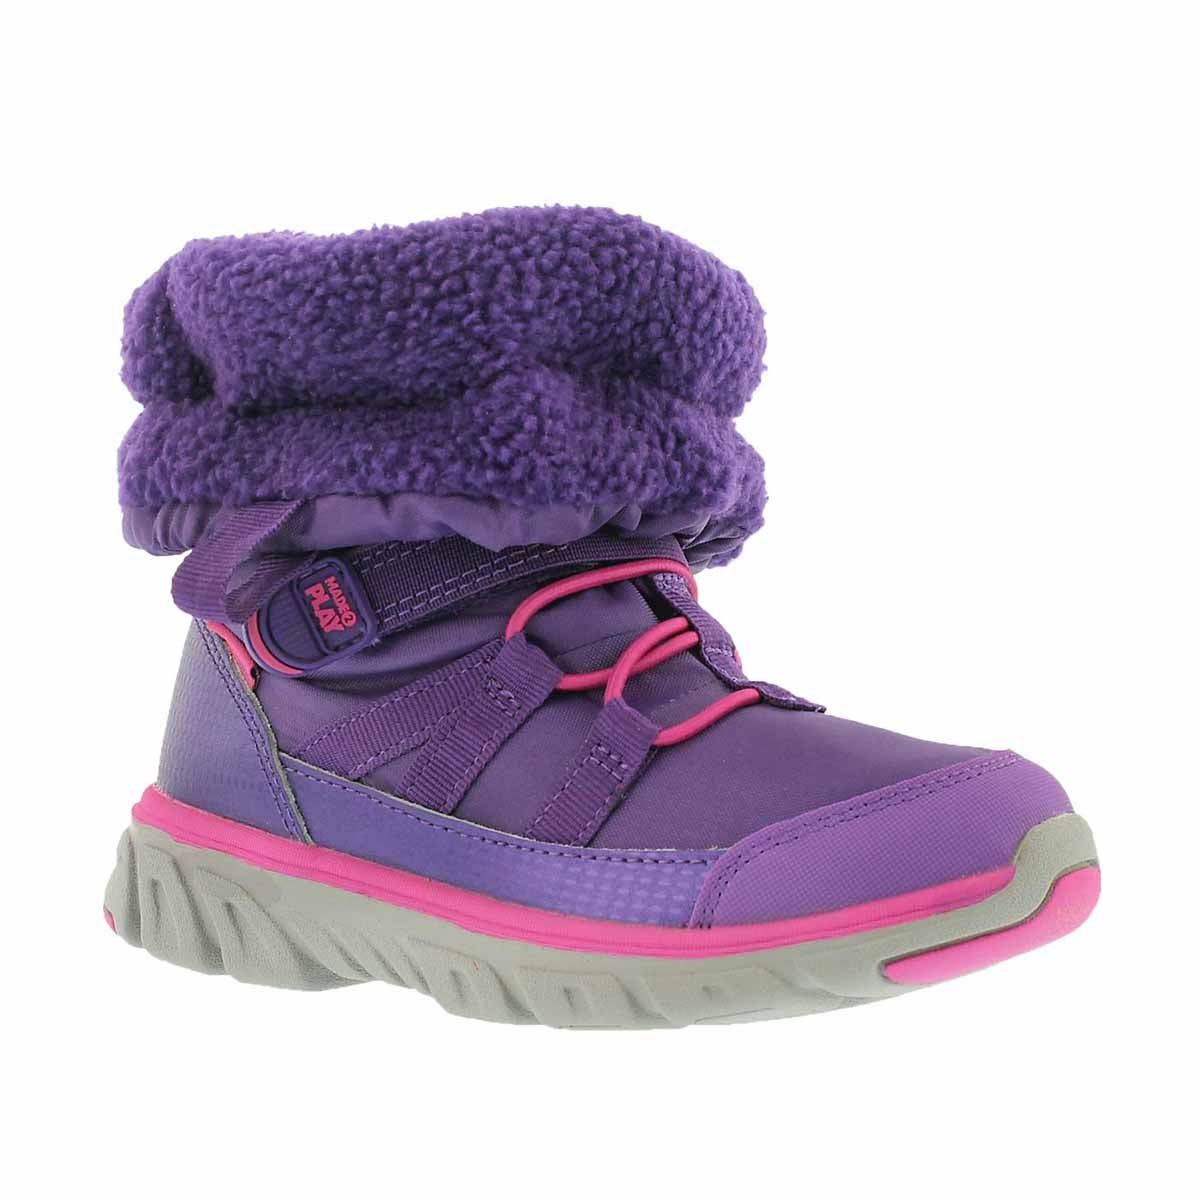 Grls M2P Sneaker Boot ppl winter boot